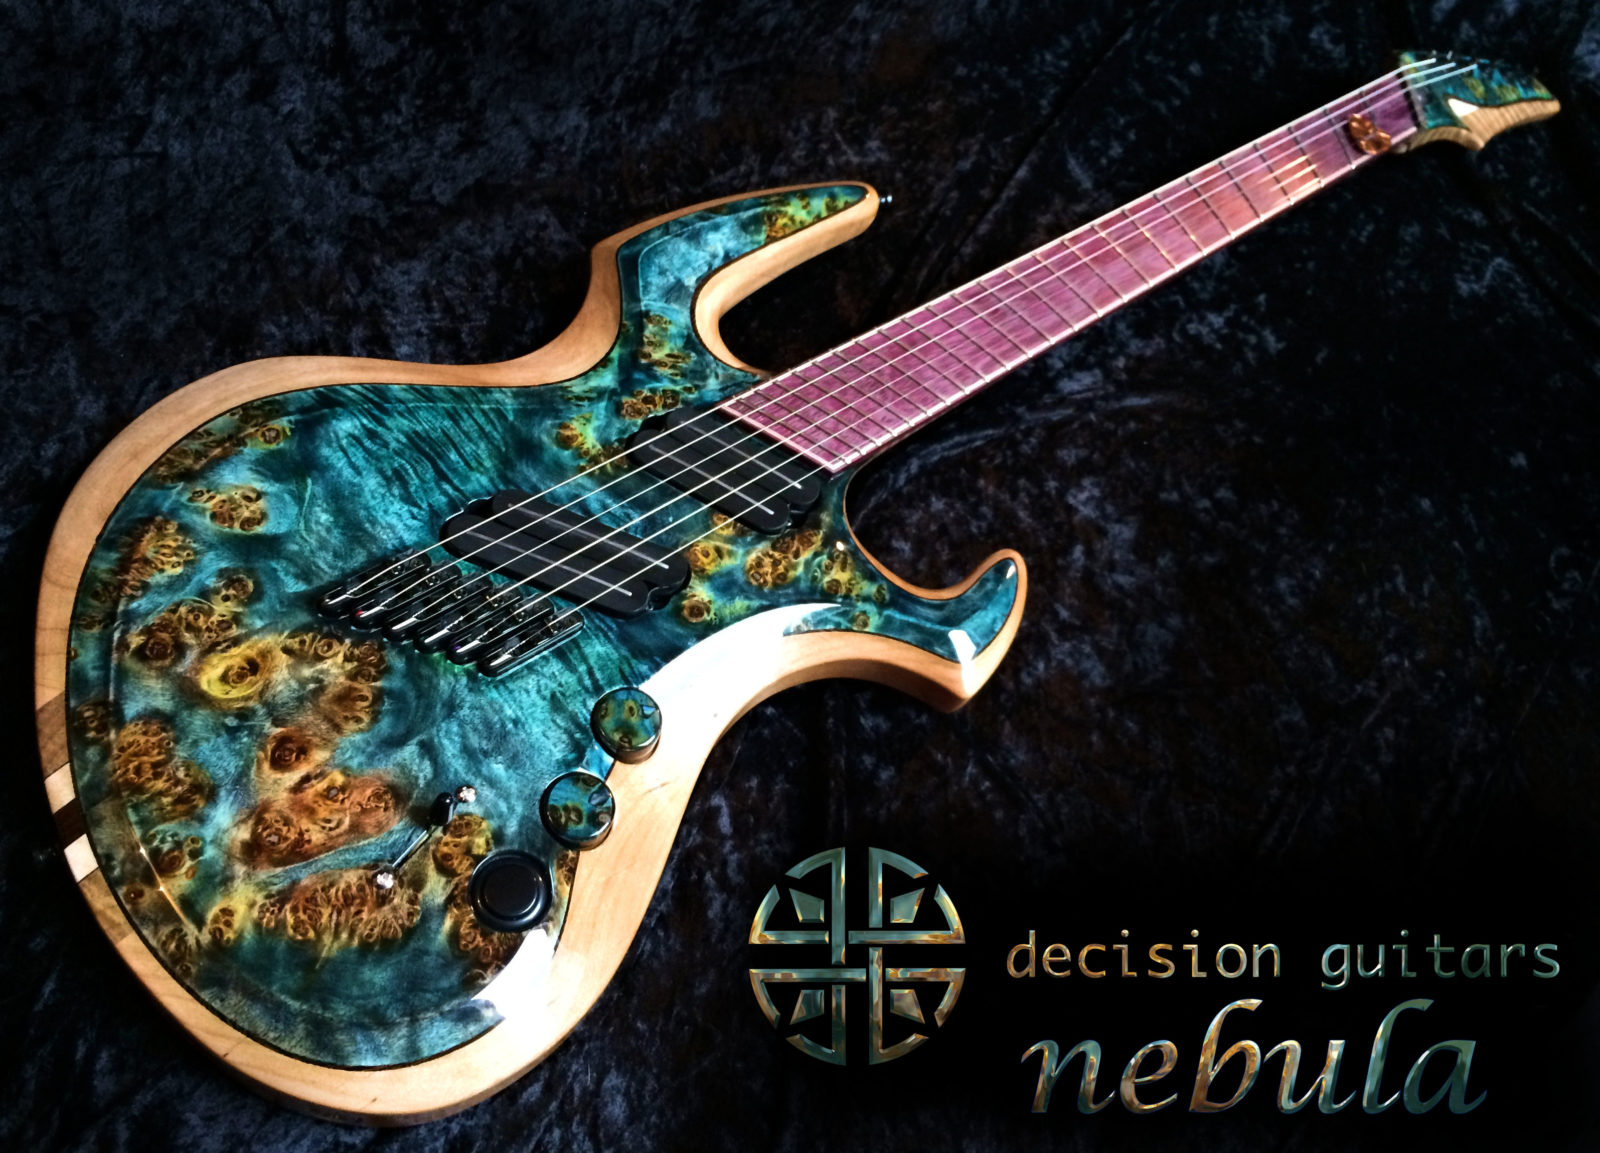 nebula burl total view